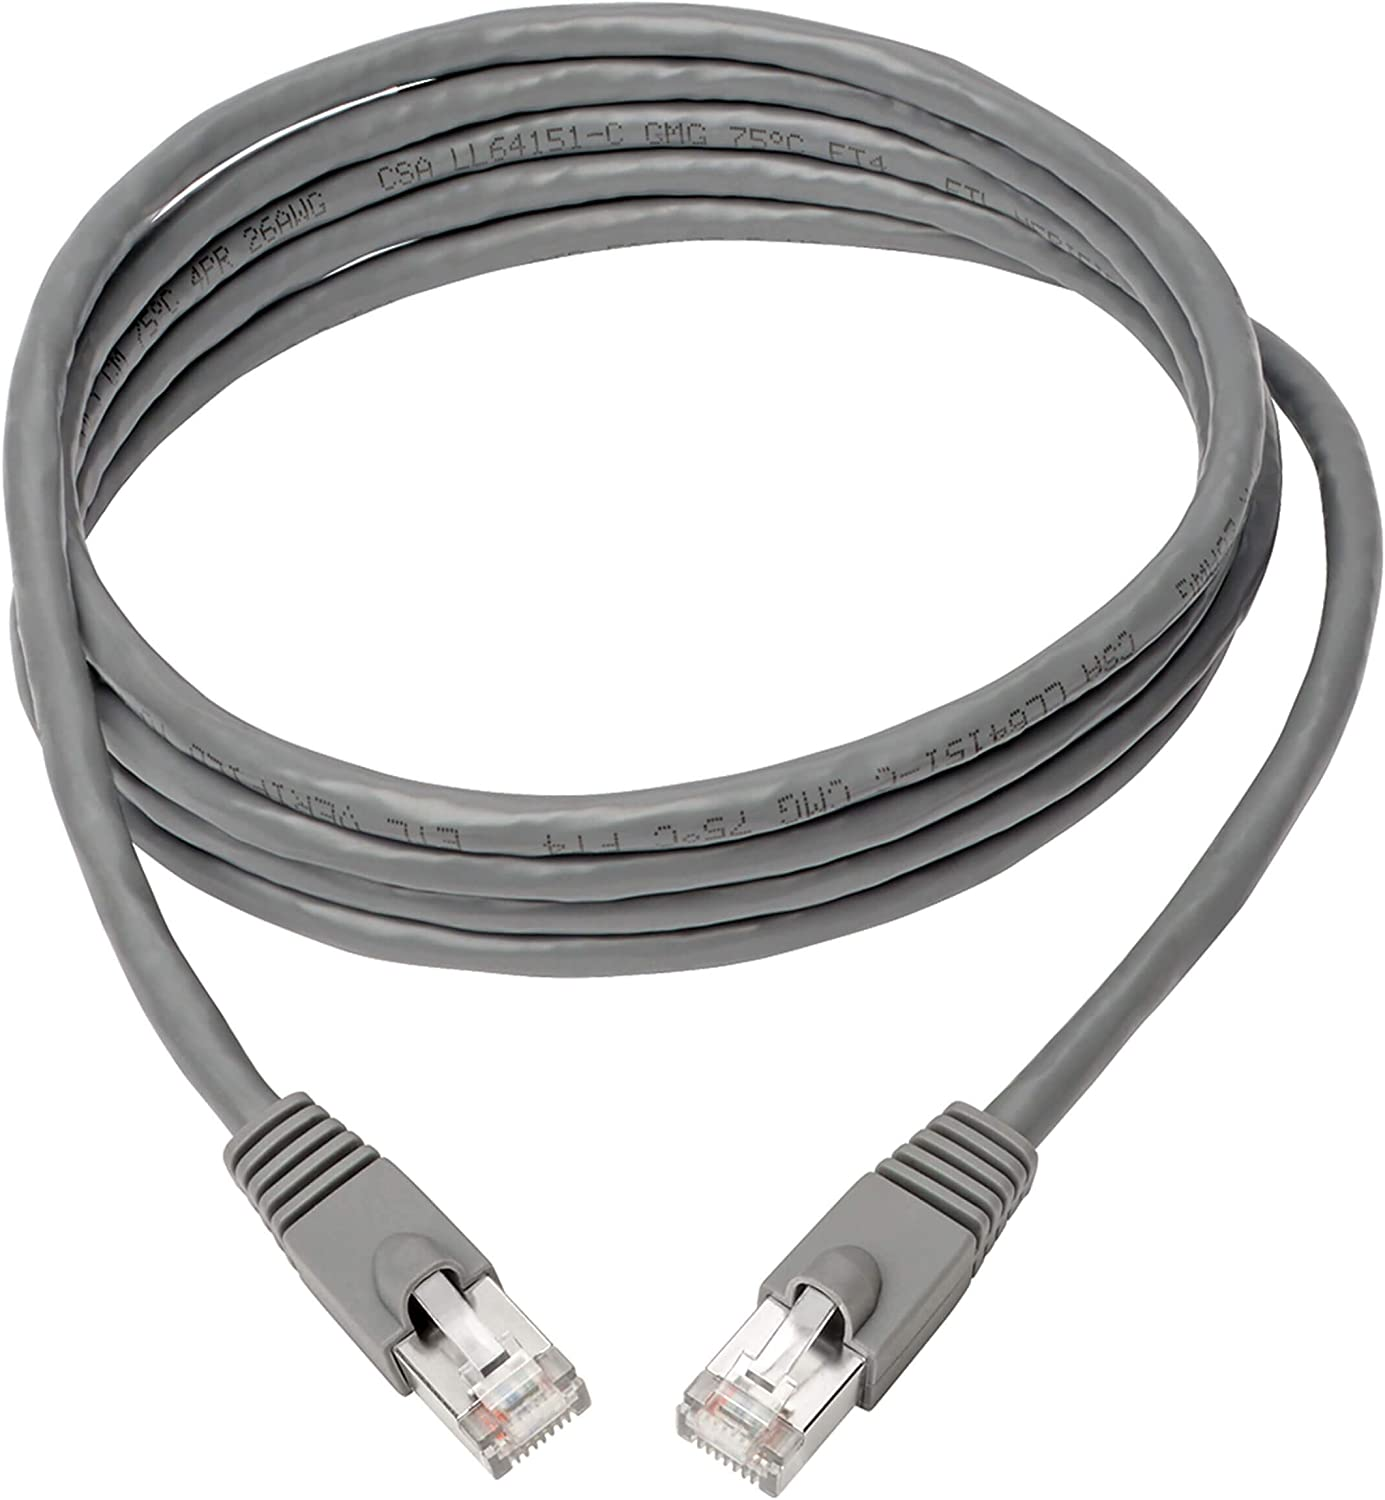 Aqua M//M Shielded Cat6a Cable N262-025-AQ Tripp Lite Cat6a Ethernet Cable STP Network Patch Cable PoE 25 ft. 10 Gbps